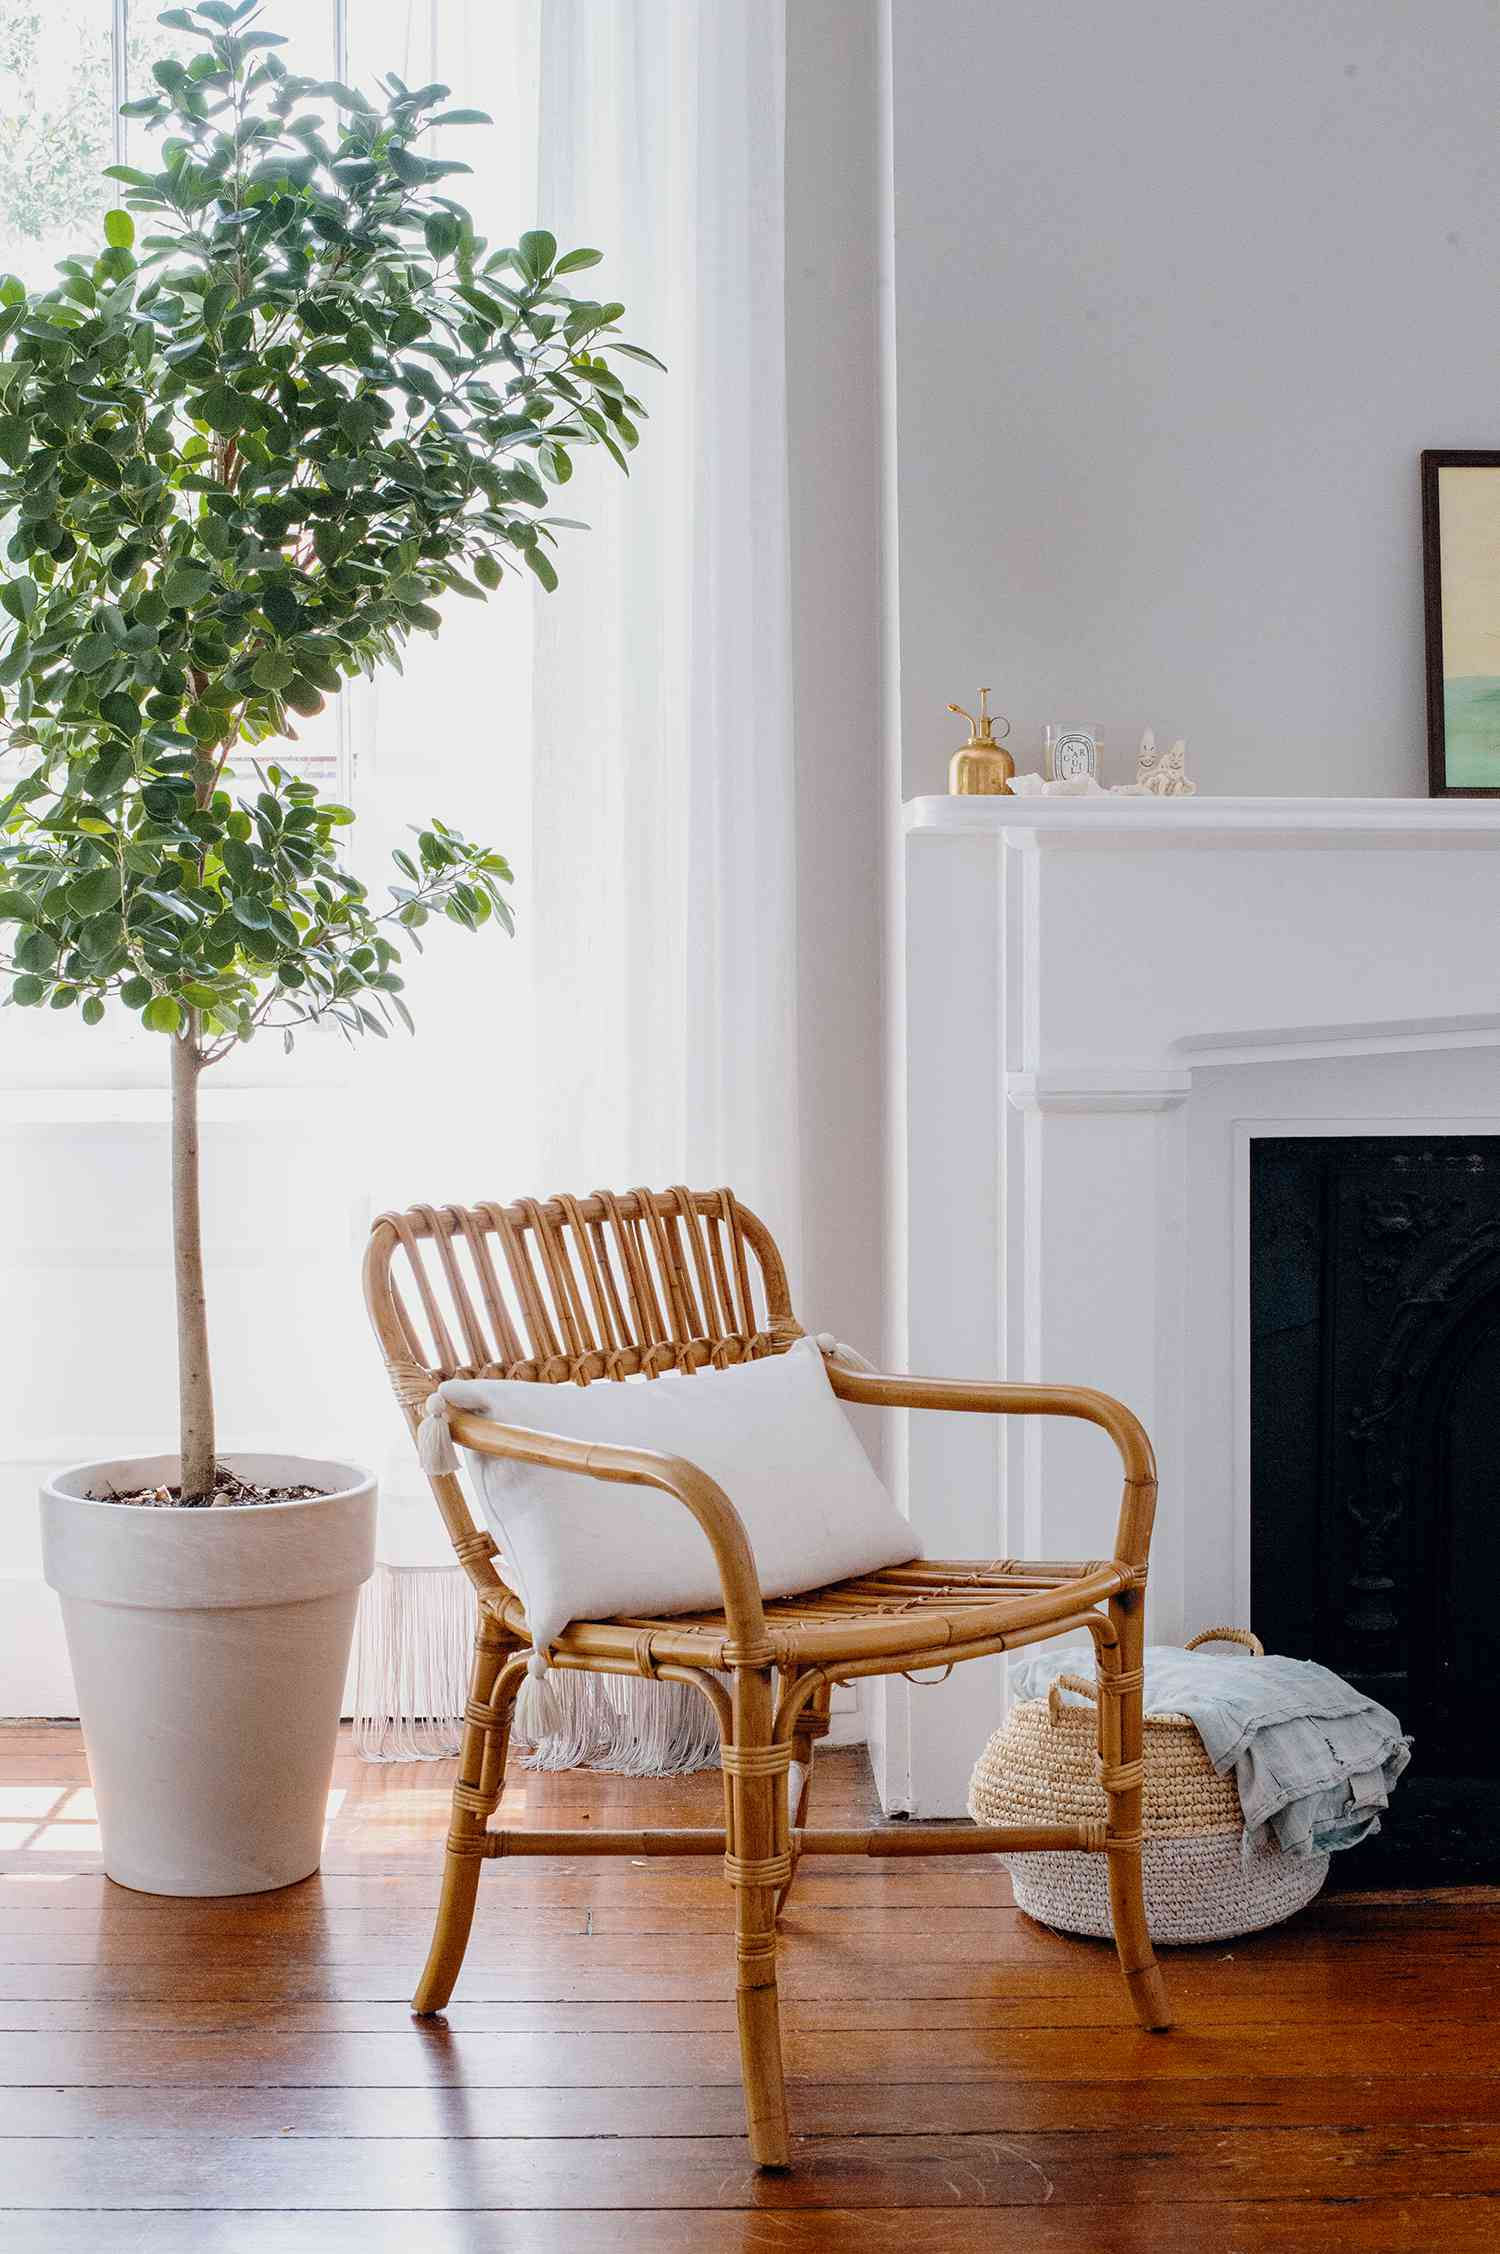 Amanda Greeley home tour - bedroom with fireplace and vintage rattan chair